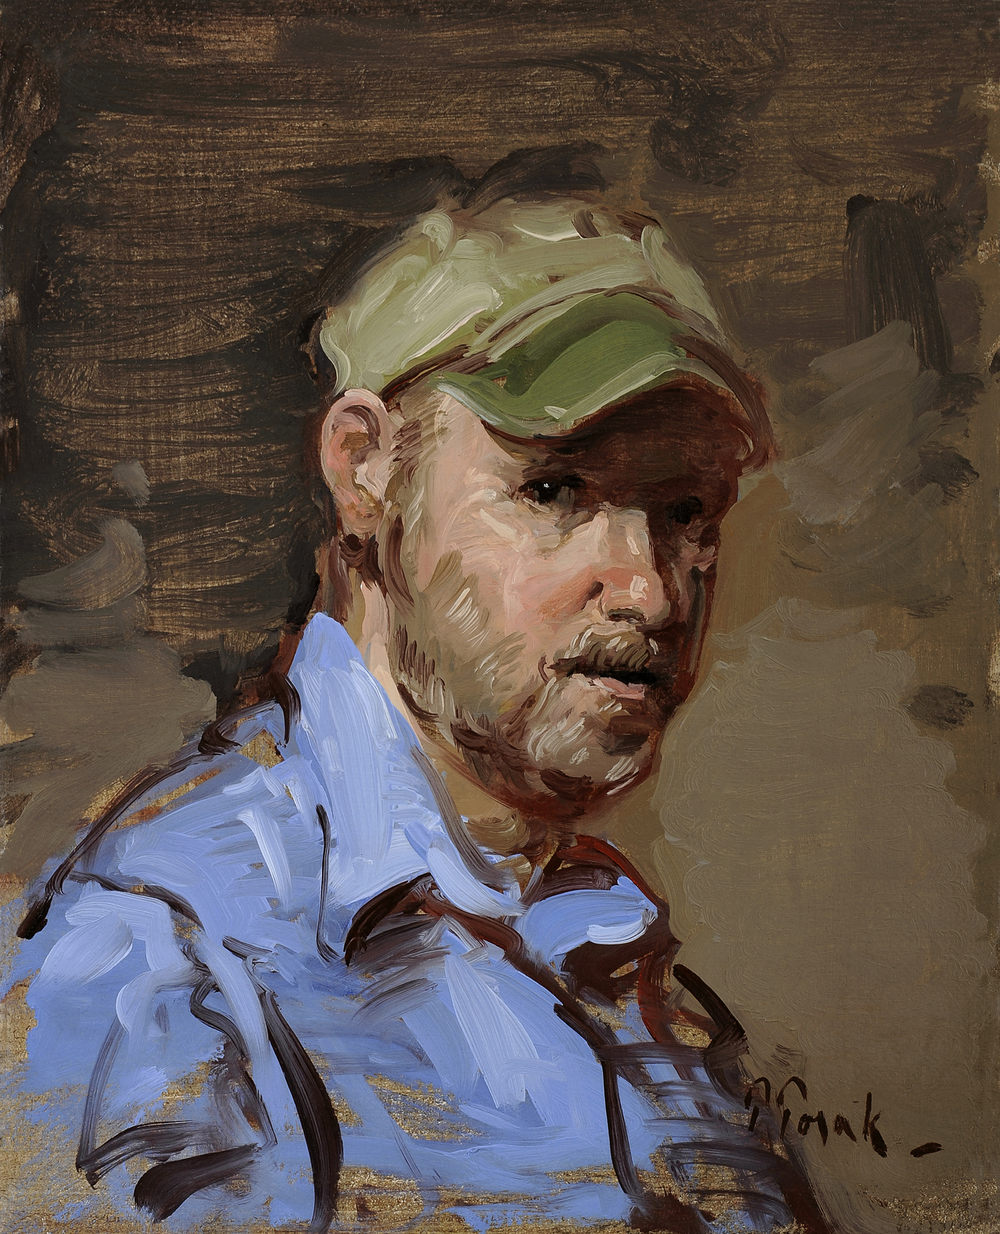 Torak_Man with a Cap_10x8_Oil on linen_$2400.jpg